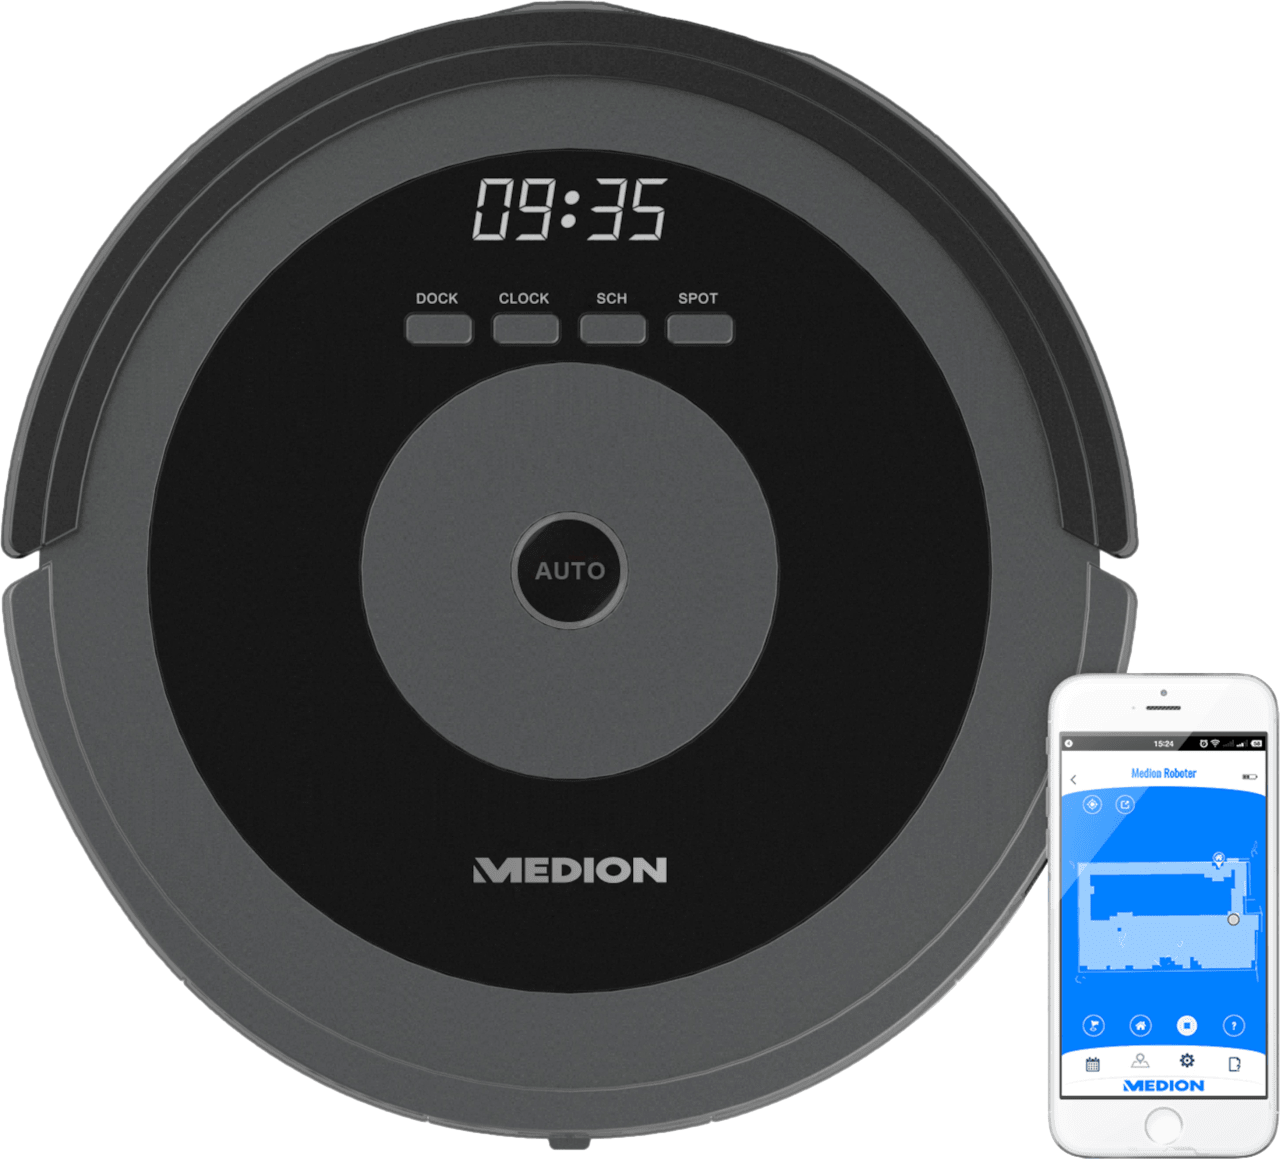 Grey Medion MD 17225 wifi robot vacuum cleaner.1